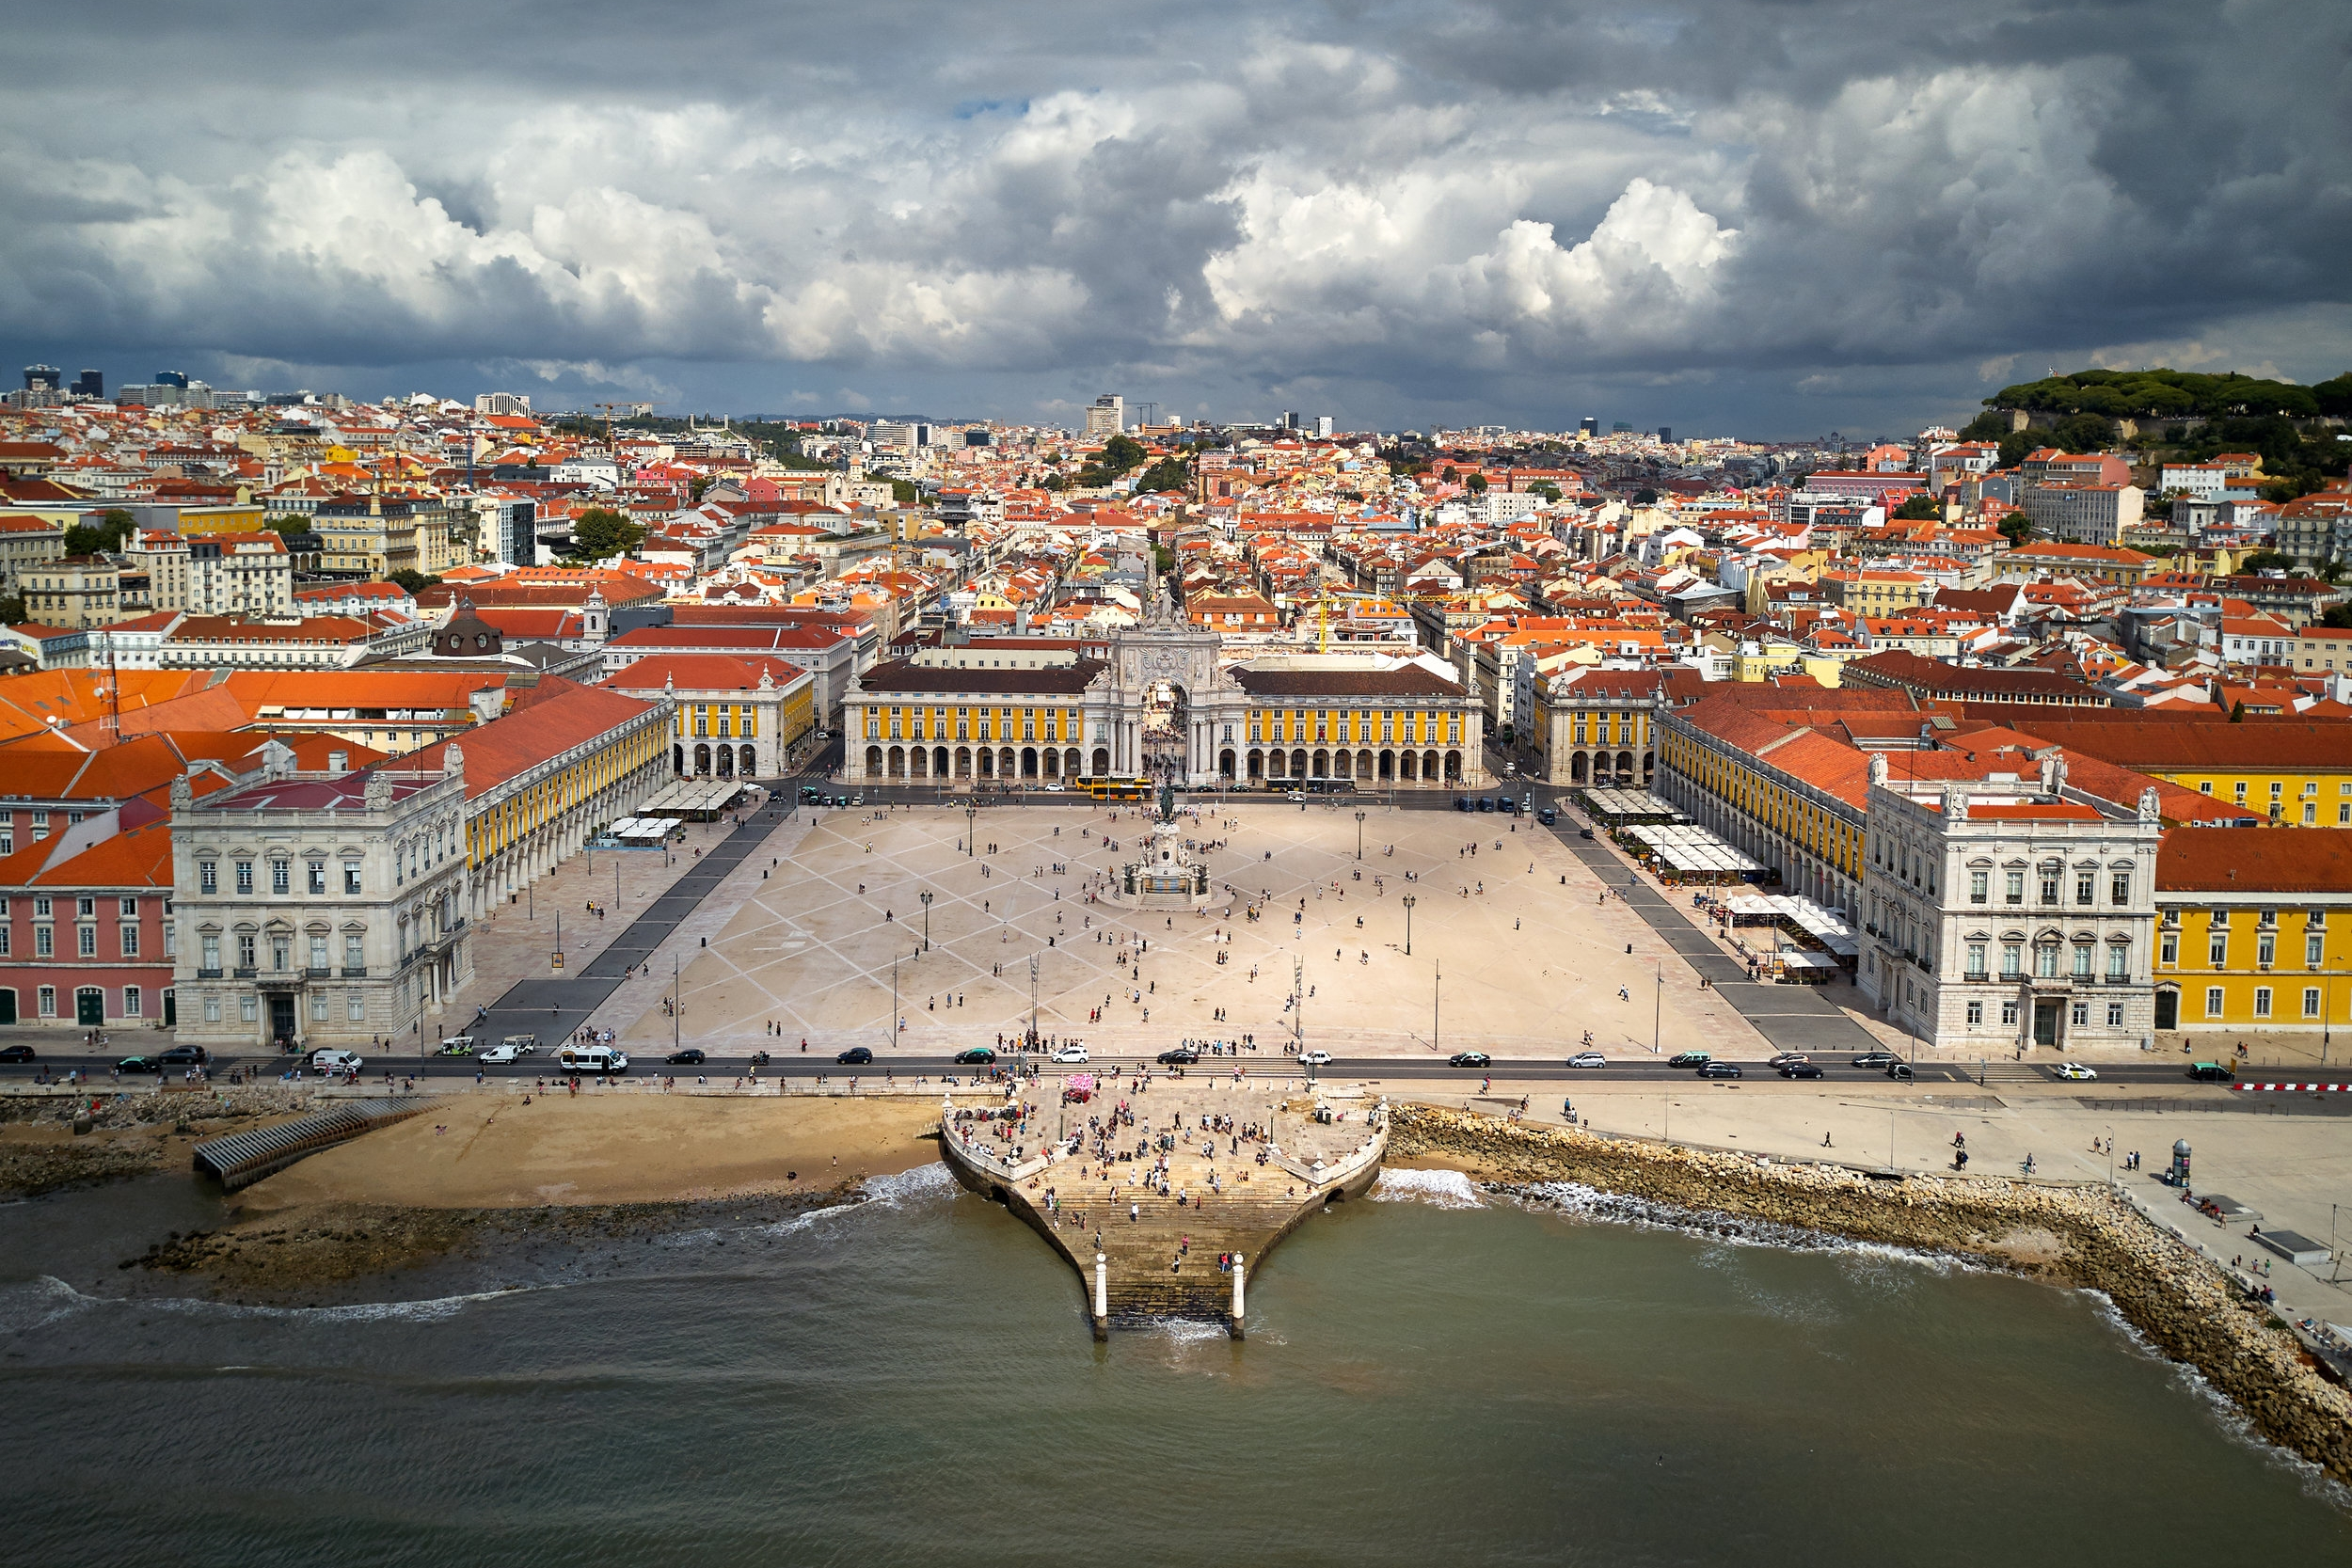 A free stopover in Lisbon? Sign me up!